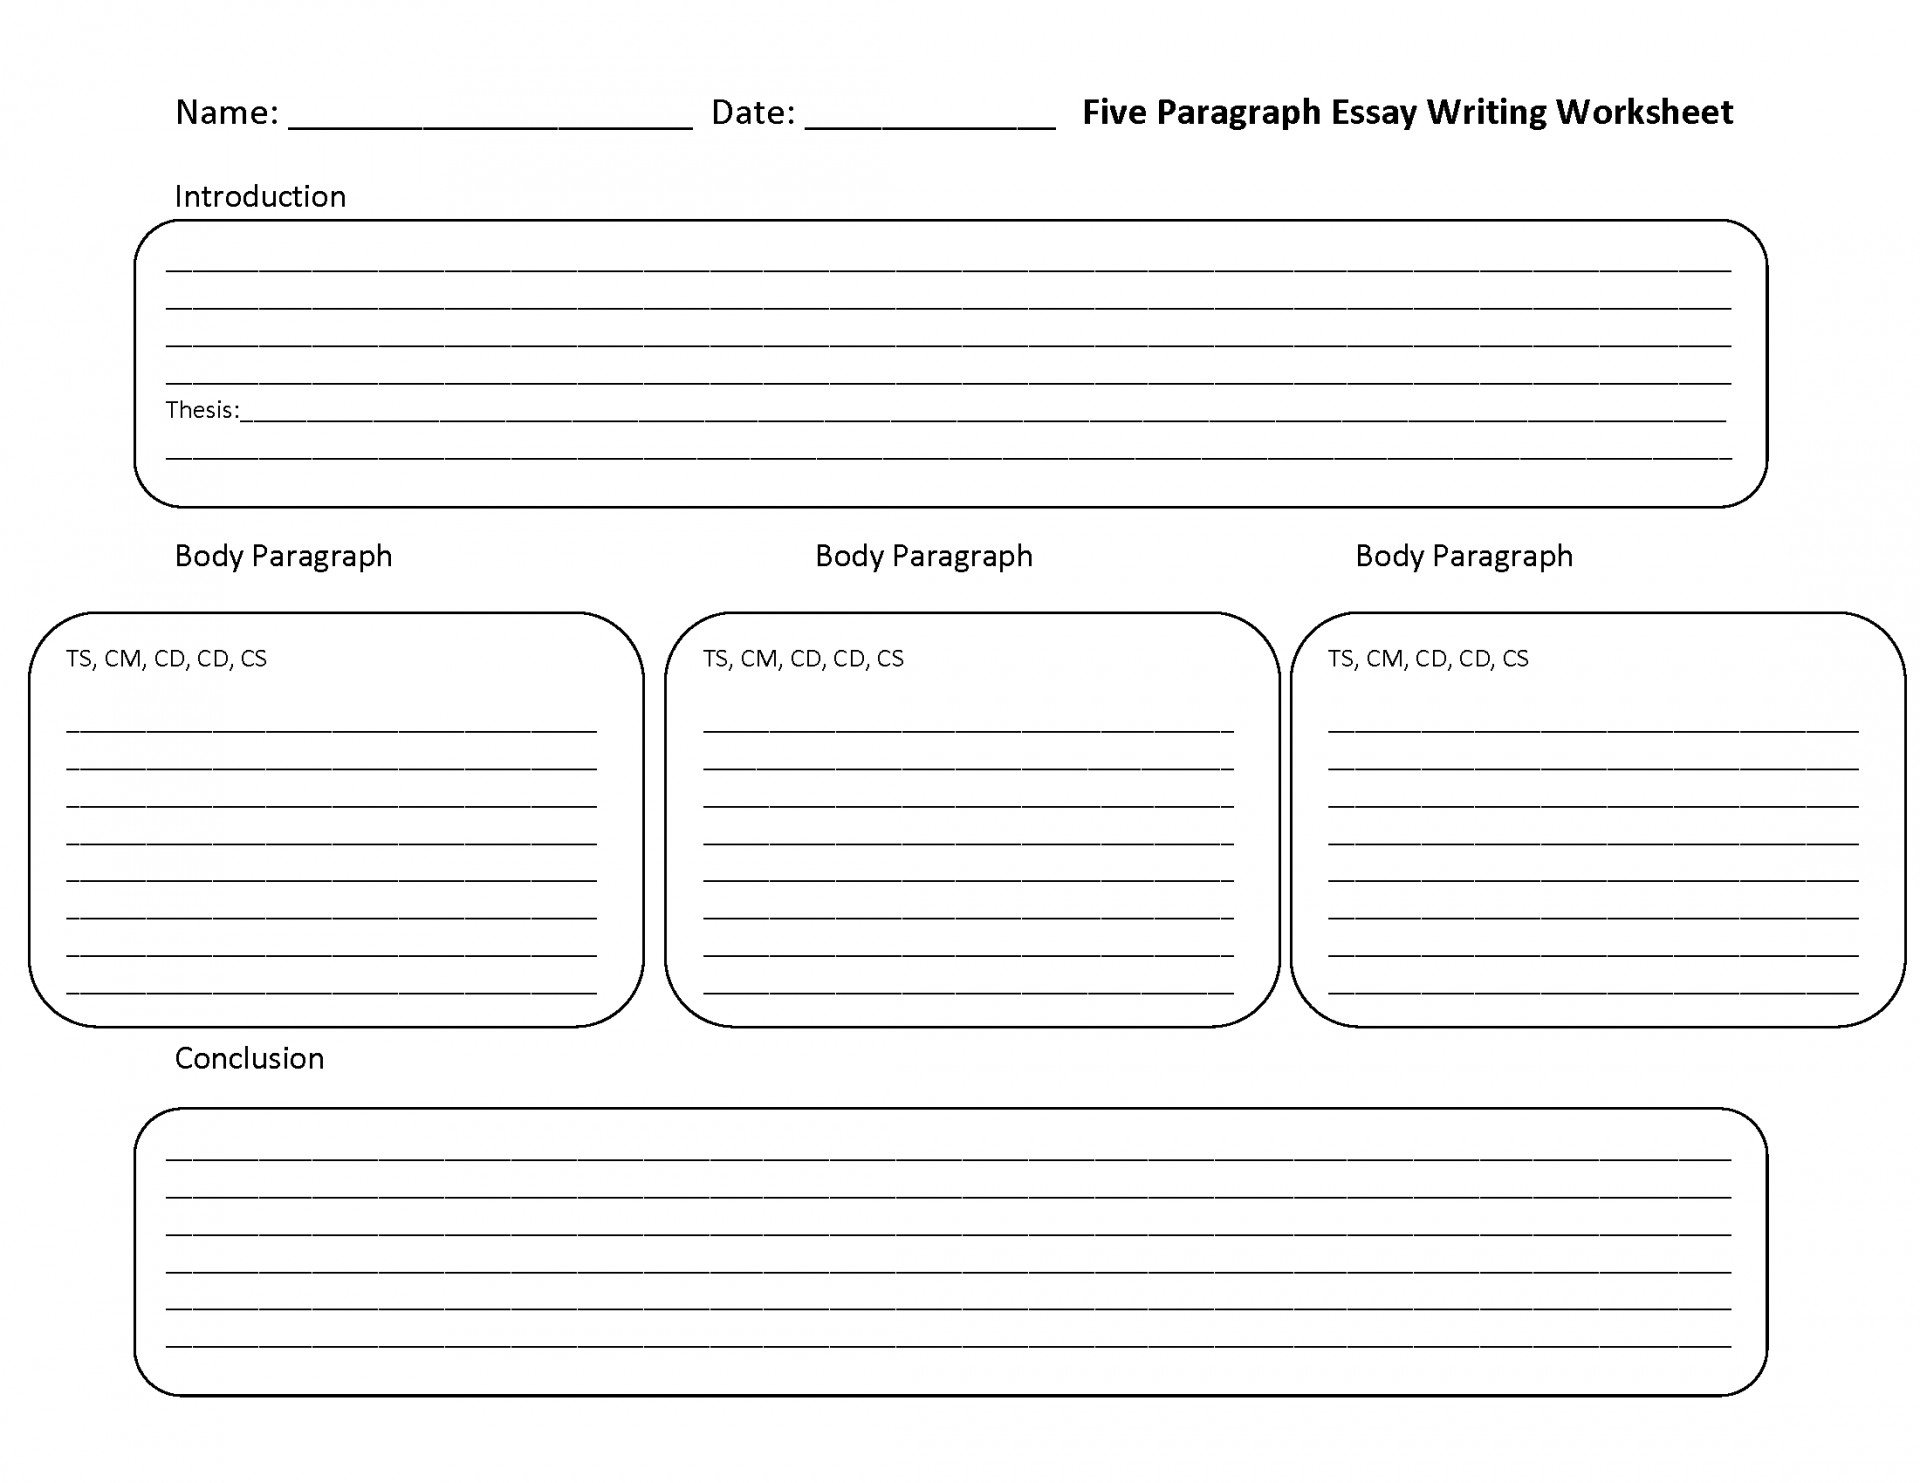 005 Five Paragraph Essay Lines Outline Template Fearsome 5 Pdf Persuasive Word 1920